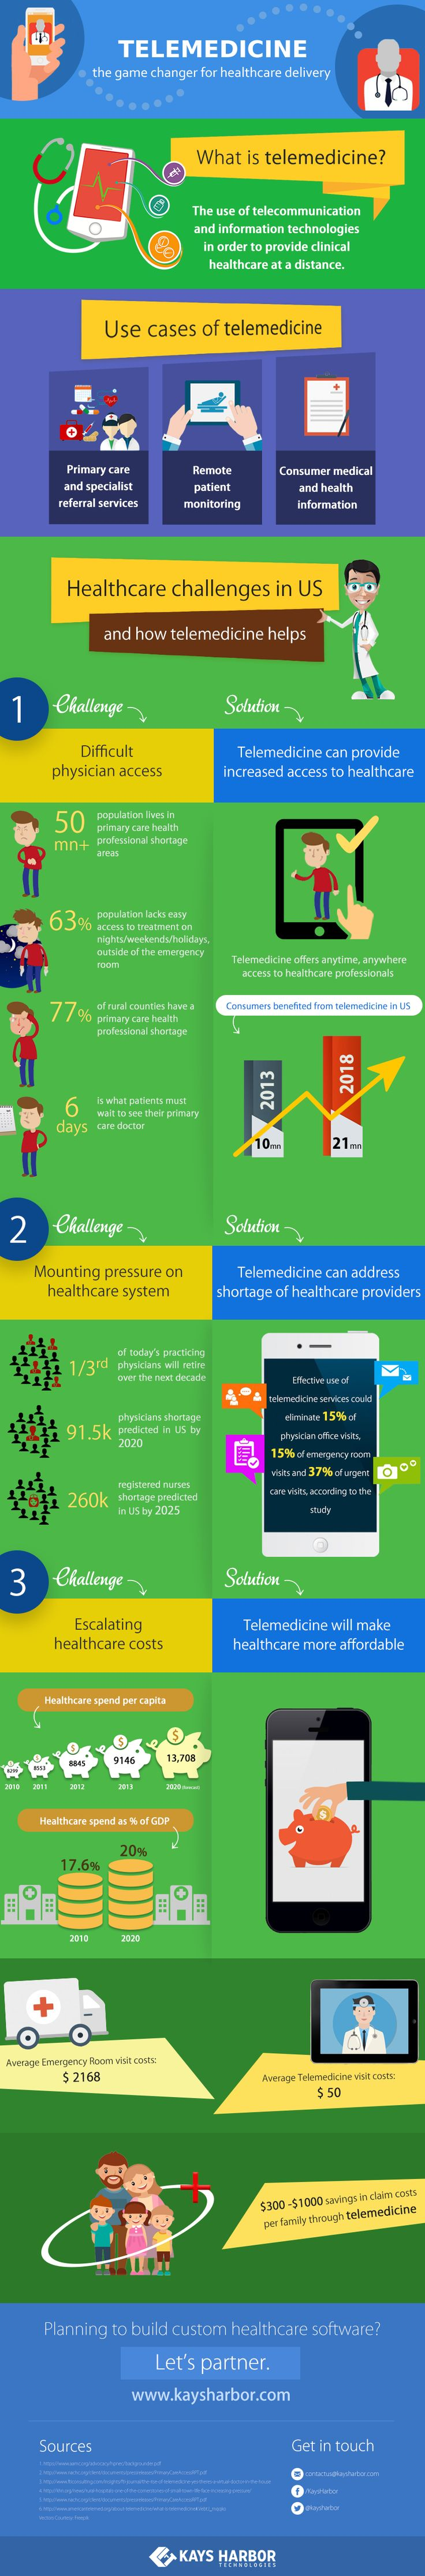 Infographic: How telemedicine is changing health care communications